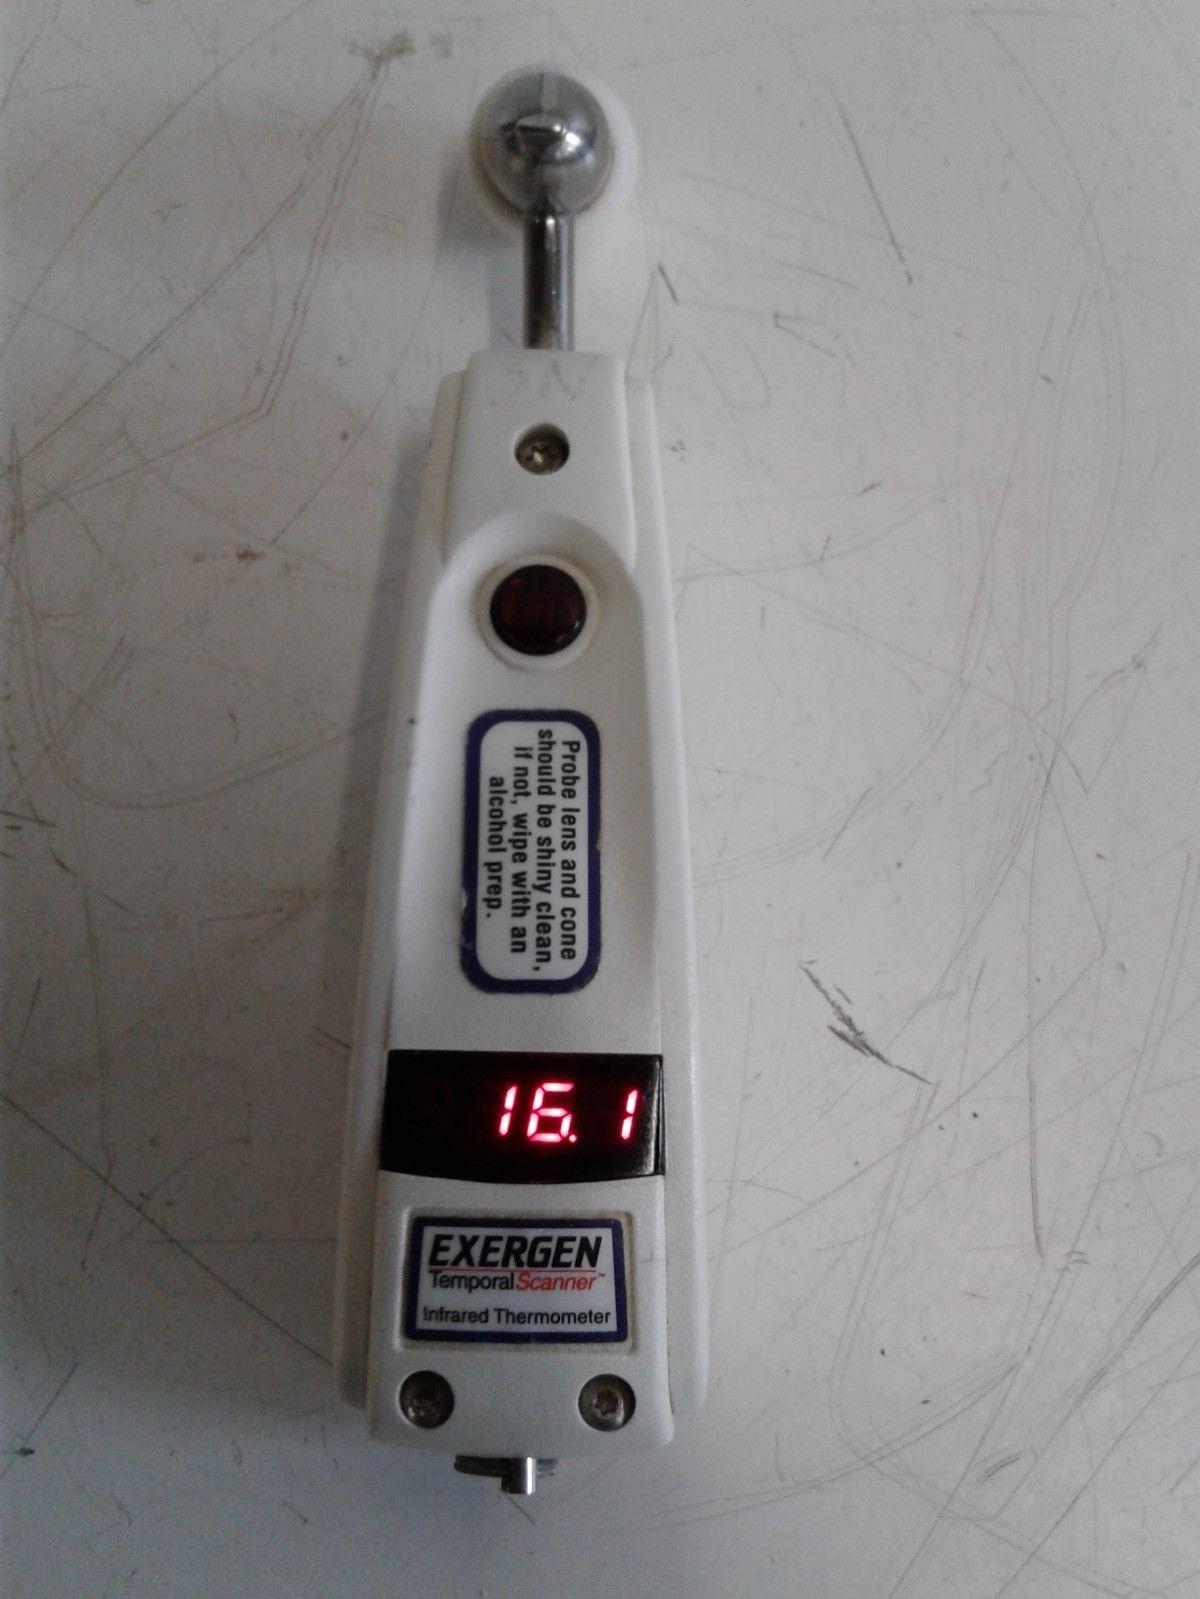 Exergen TAT-5000 Temporal Scanner Infrared Thermometer - Tested